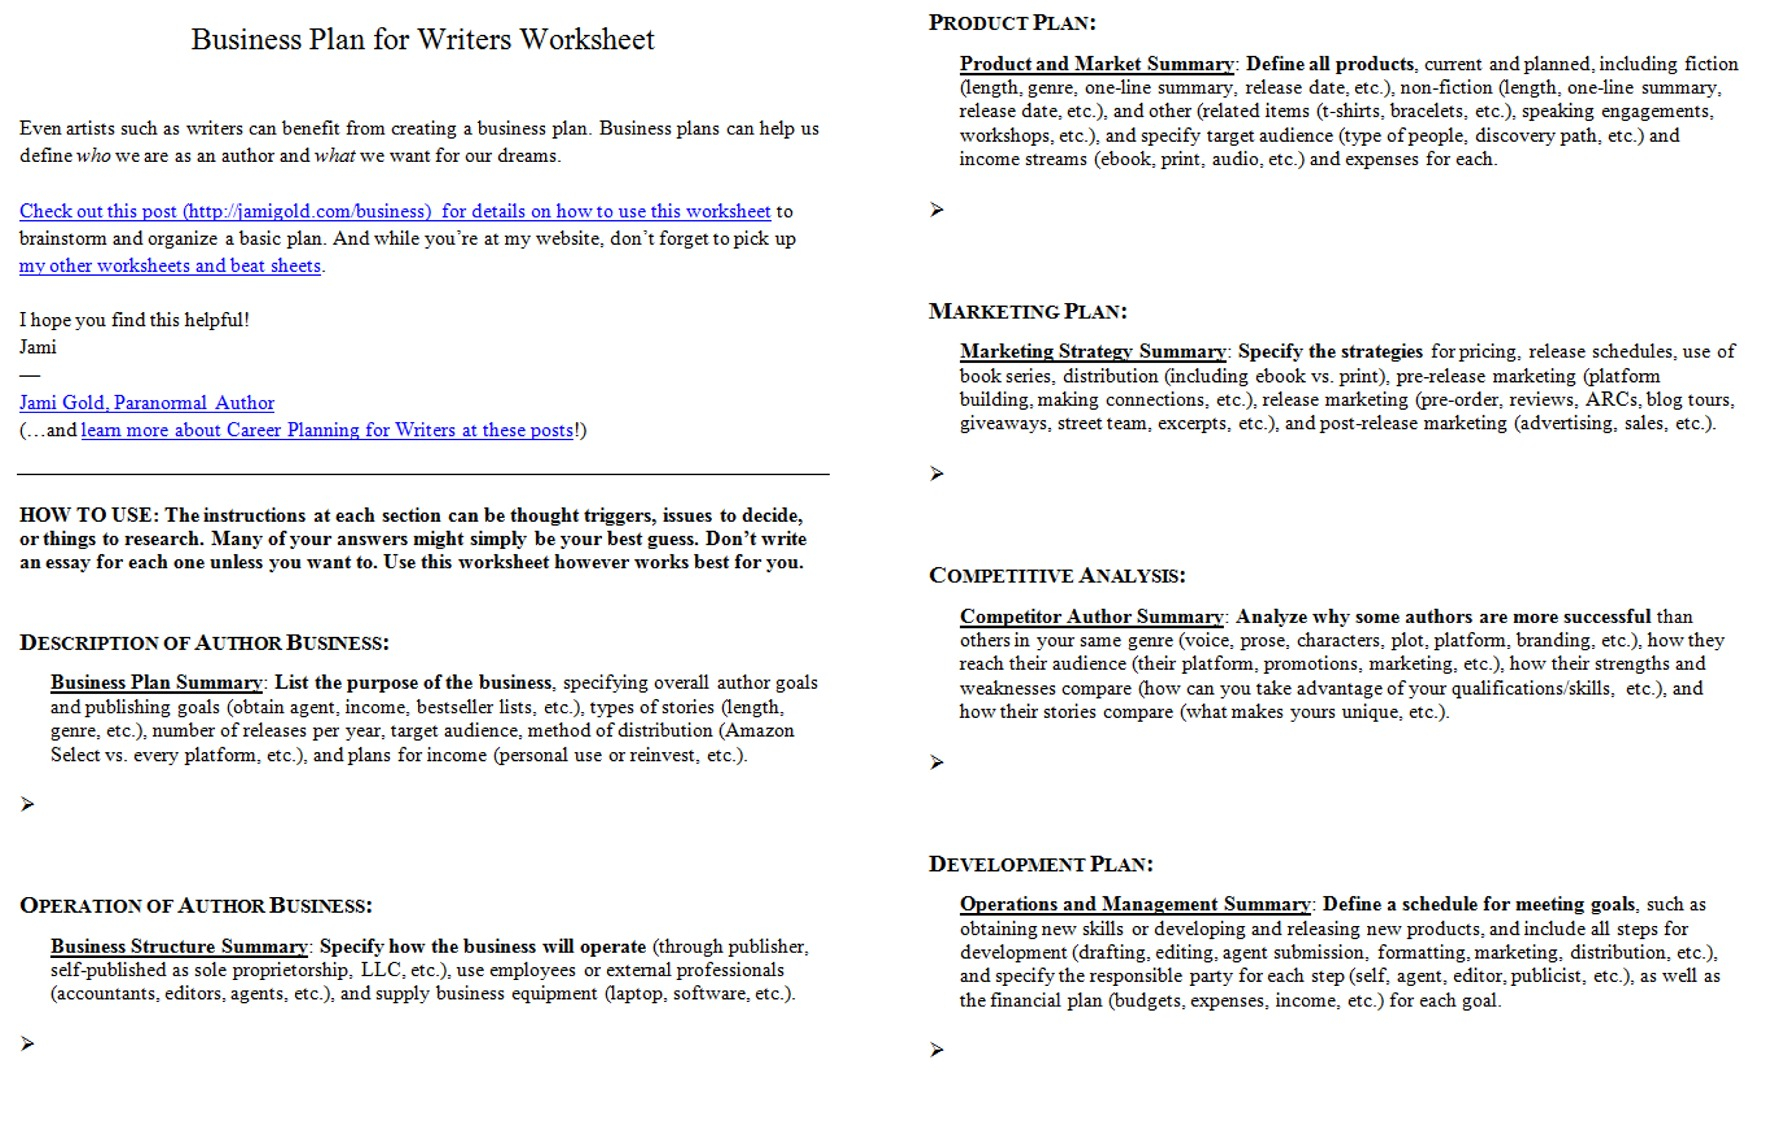 Weirdmailus  Pleasant Worksheets For Writers  Jami Gold Paranormal Author With Fetching Screen Shot Of Both Pages Of The Business Plan For Writers Worksheet With Comely Nucleic Acids Worksheet Also Citizenship In The Community Worksheet In Addition Acids Bases And Salts Worksheet And Chapter  The Theory Of Evolution Worksheet Answers As Well As Letter X Worksheets Additionally Handwriting Without Tears Worksheets From Jamigoldcom With Weirdmailus  Fetching Worksheets For Writers  Jami Gold Paranormal Author With Comely Screen Shot Of Both Pages Of The Business Plan For Writers Worksheet And Pleasant Nucleic Acids Worksheet Also Citizenship In The Community Worksheet In Addition Acids Bases And Salts Worksheet From Jamigoldcom